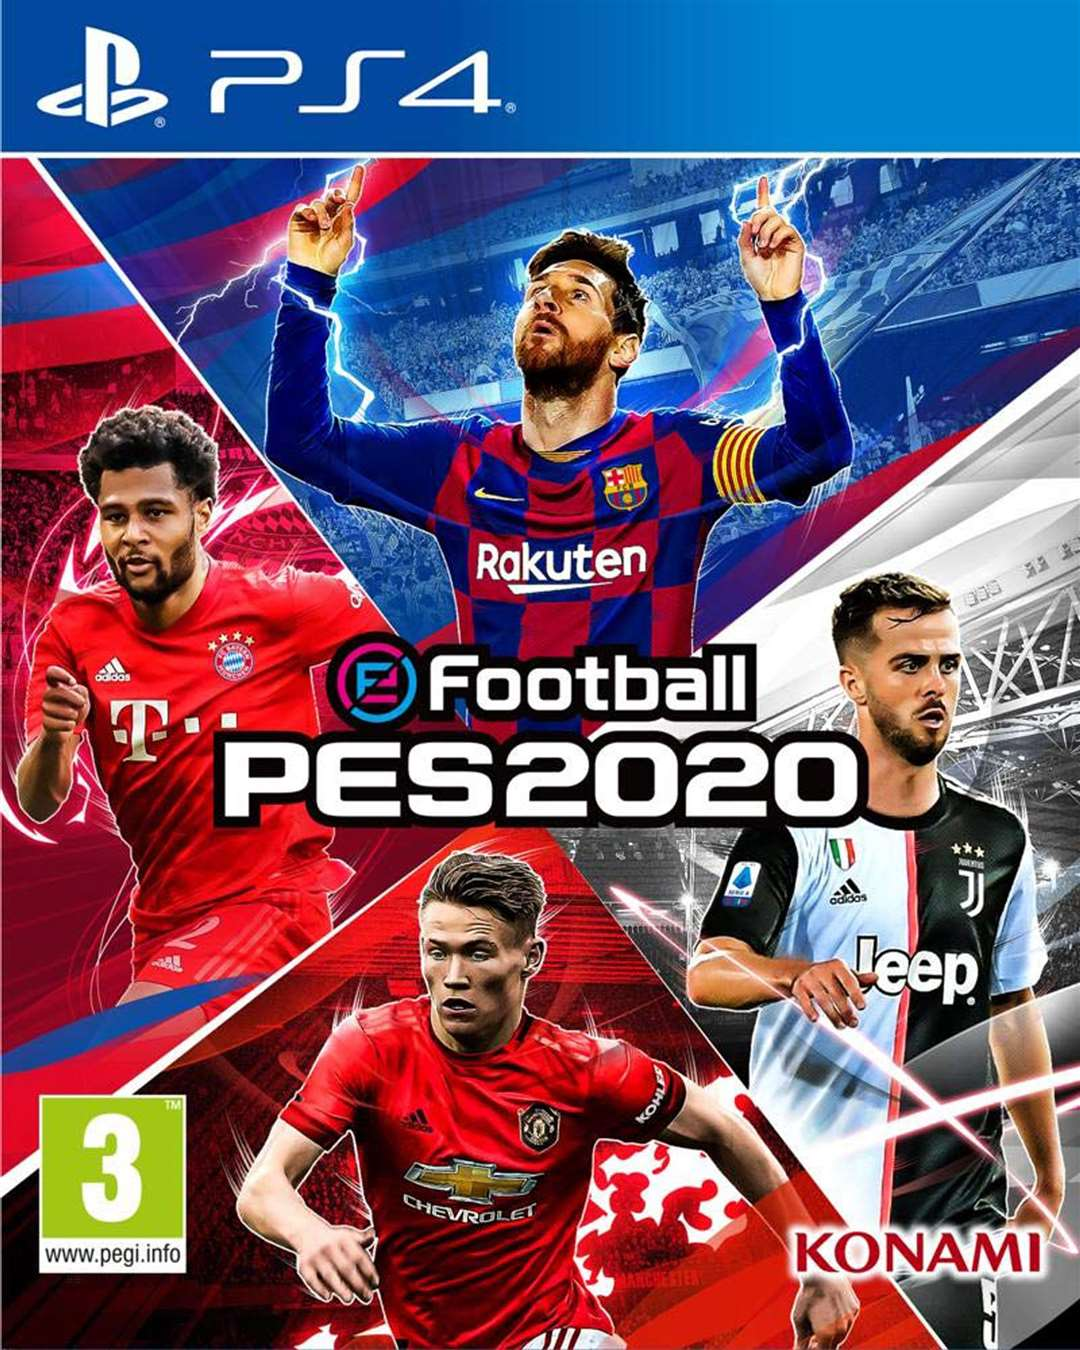 eFootball PES 2020. Picture: PA Photo/Handout